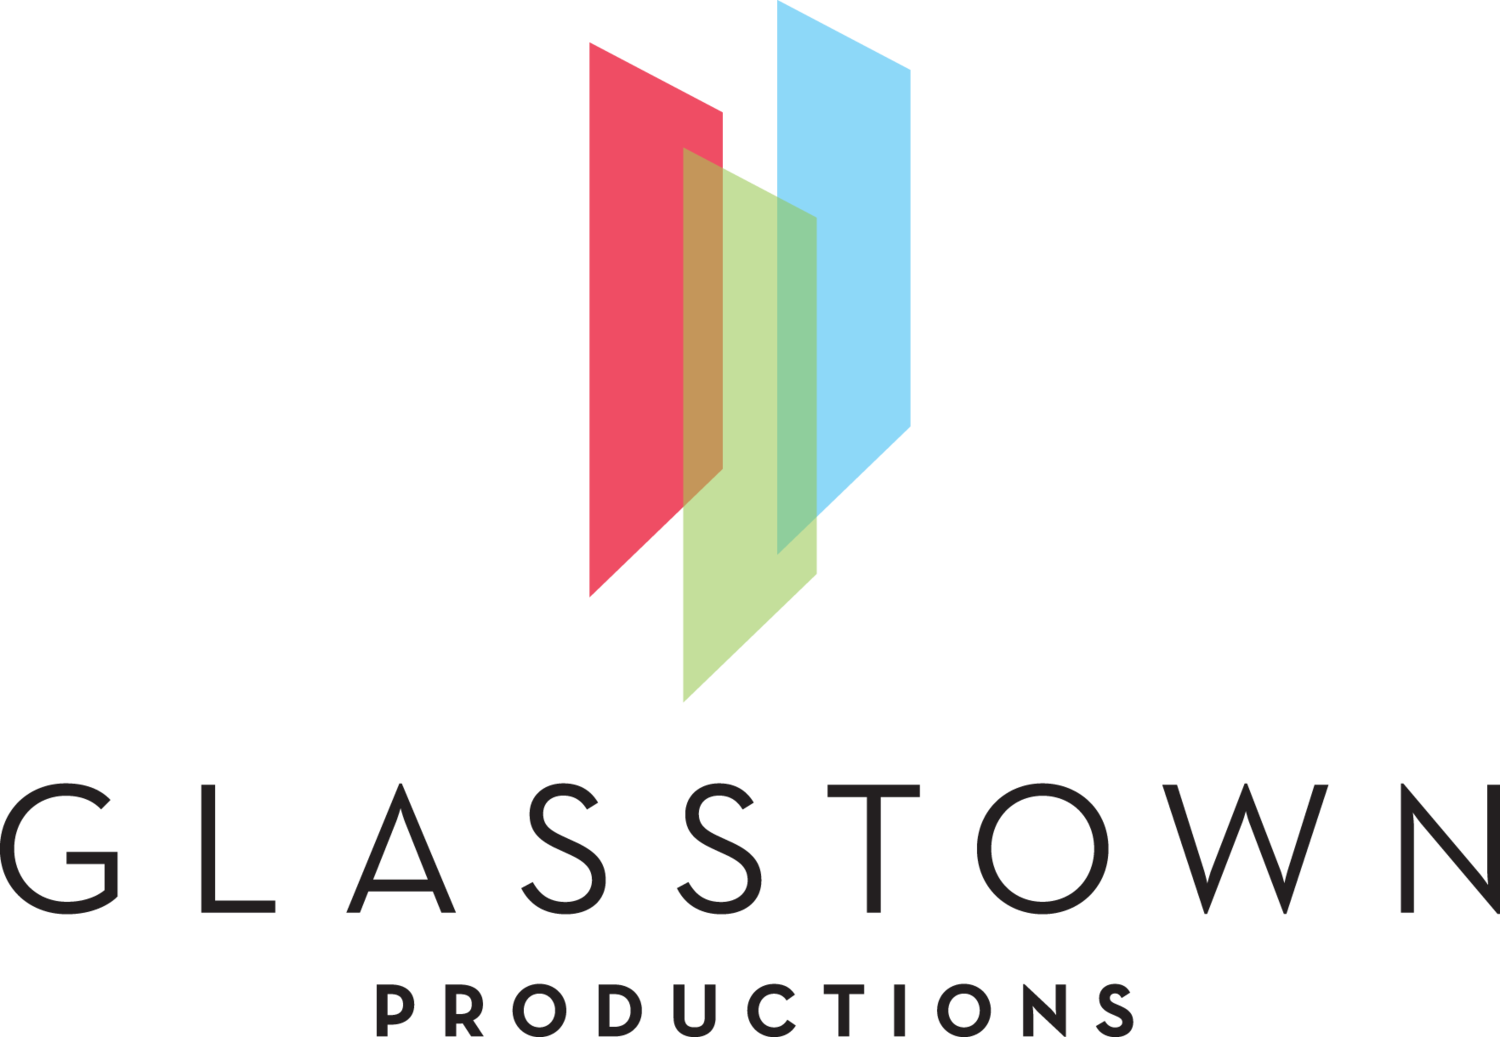 Glasstown Productions